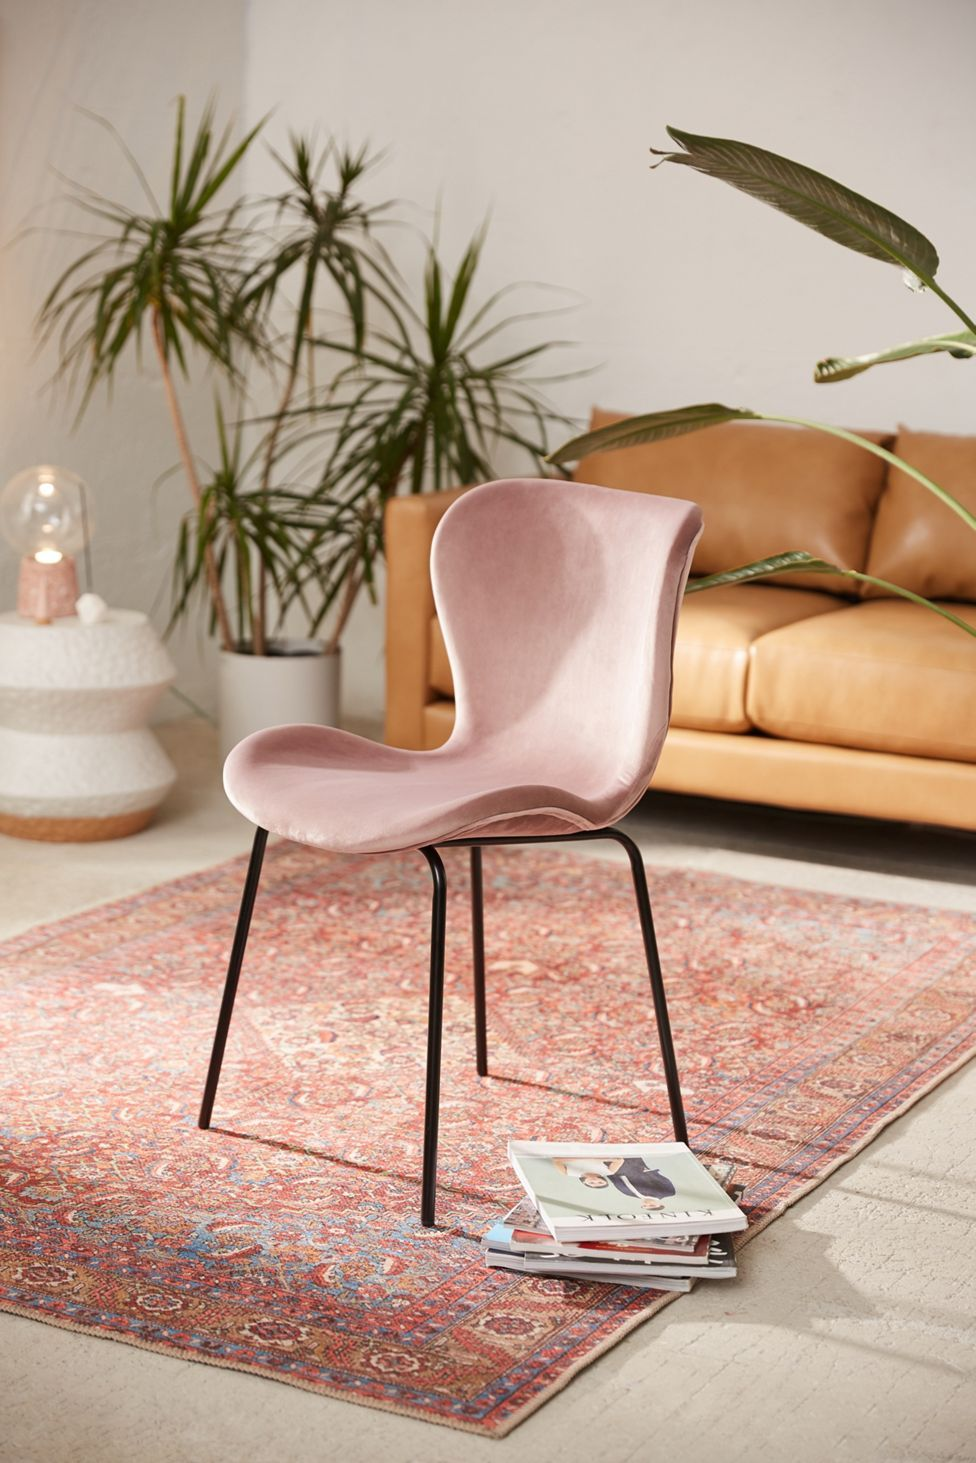 Rosa Velvet Dining Chair Urban Outfitters In 2020 Velvet Dining Chairs Dining Chairs Chair